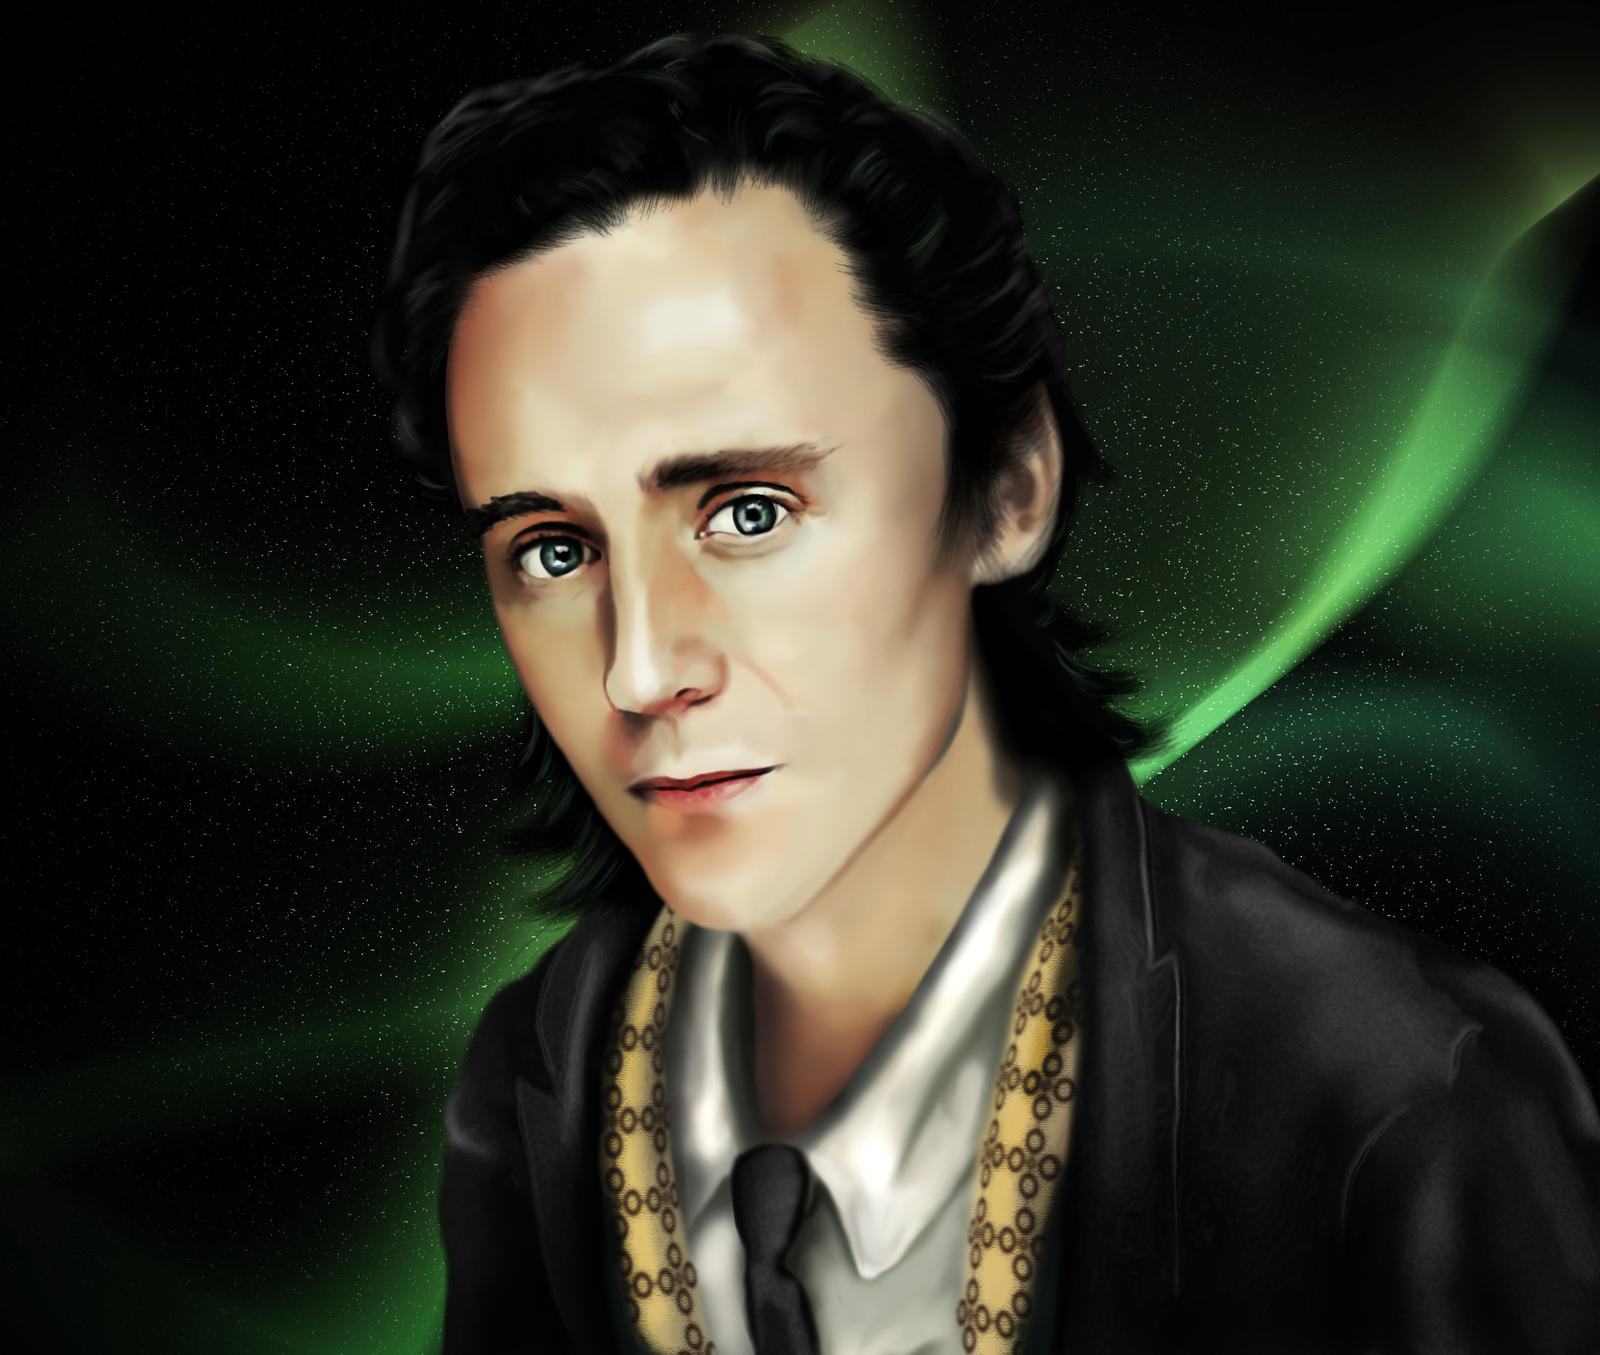 Loki Laufeyson by JessHavok